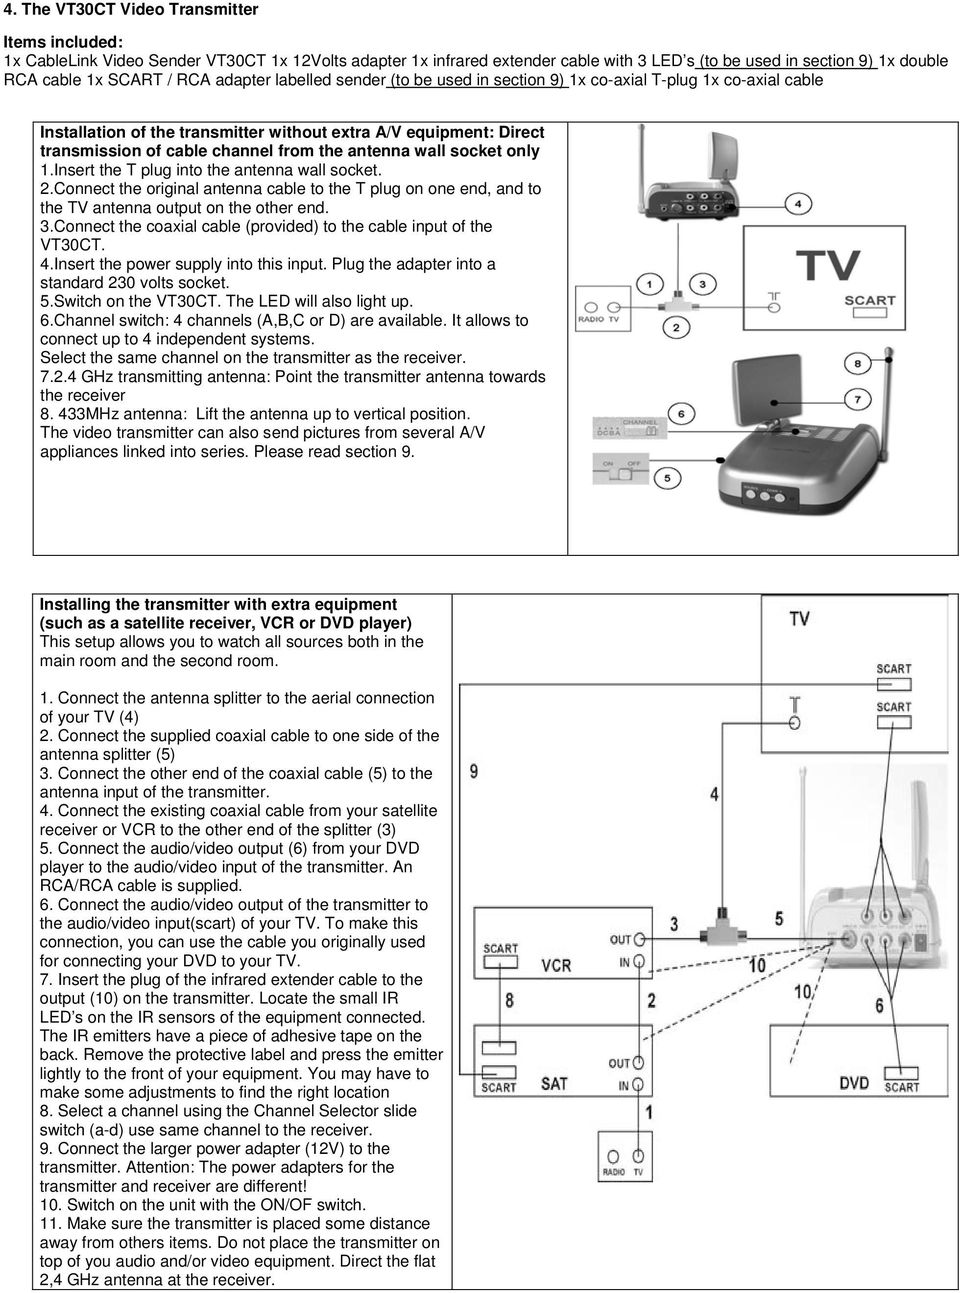 antenna wall socket only 1.Insert the T plug into the antenna wall socket. 2.Connect the original antenna cable to the T plug on one end, and to the TV antenna output on the other end. 3.